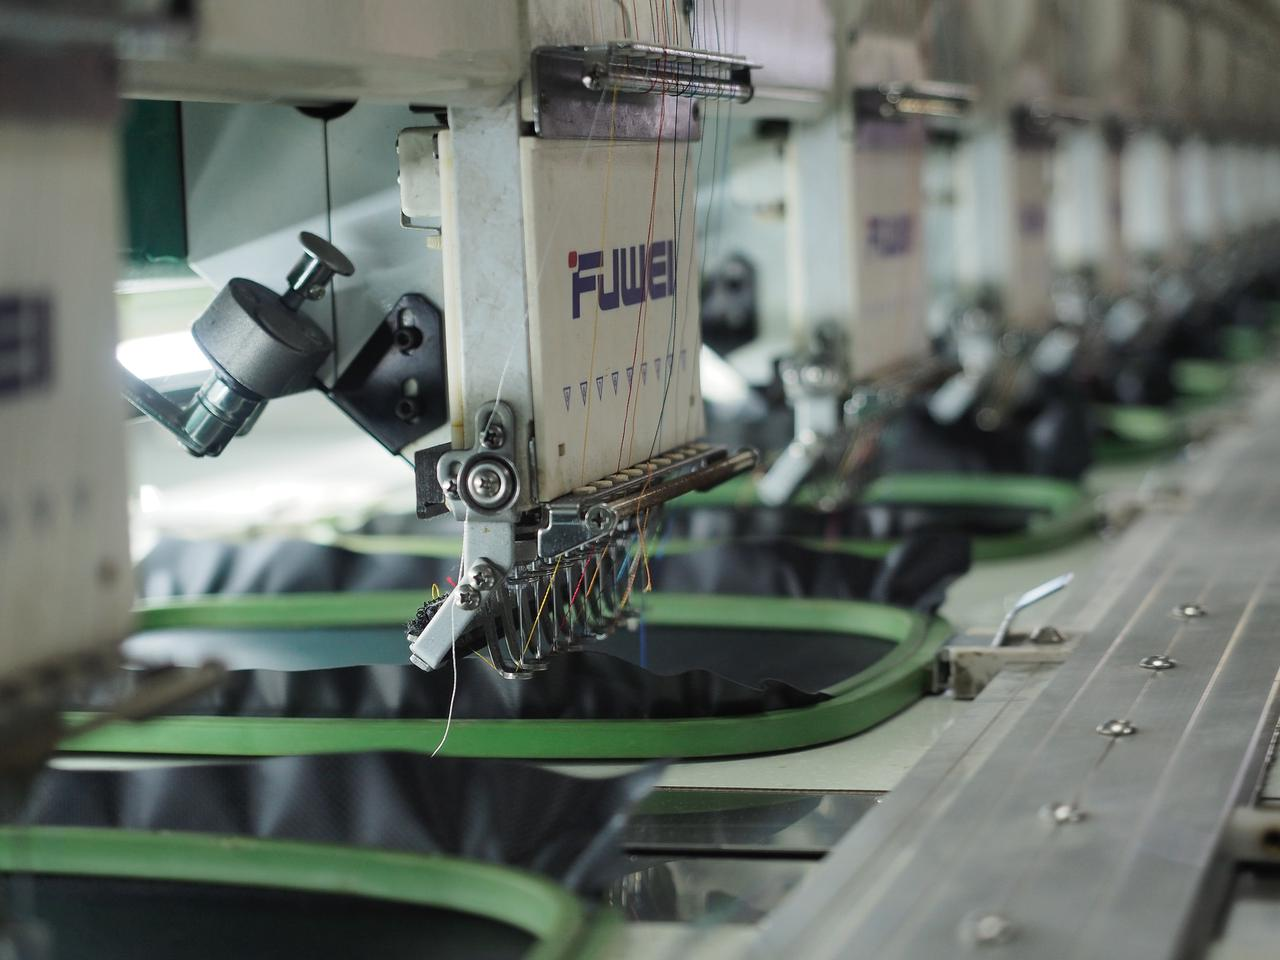 embroidery machine fulfilling orders